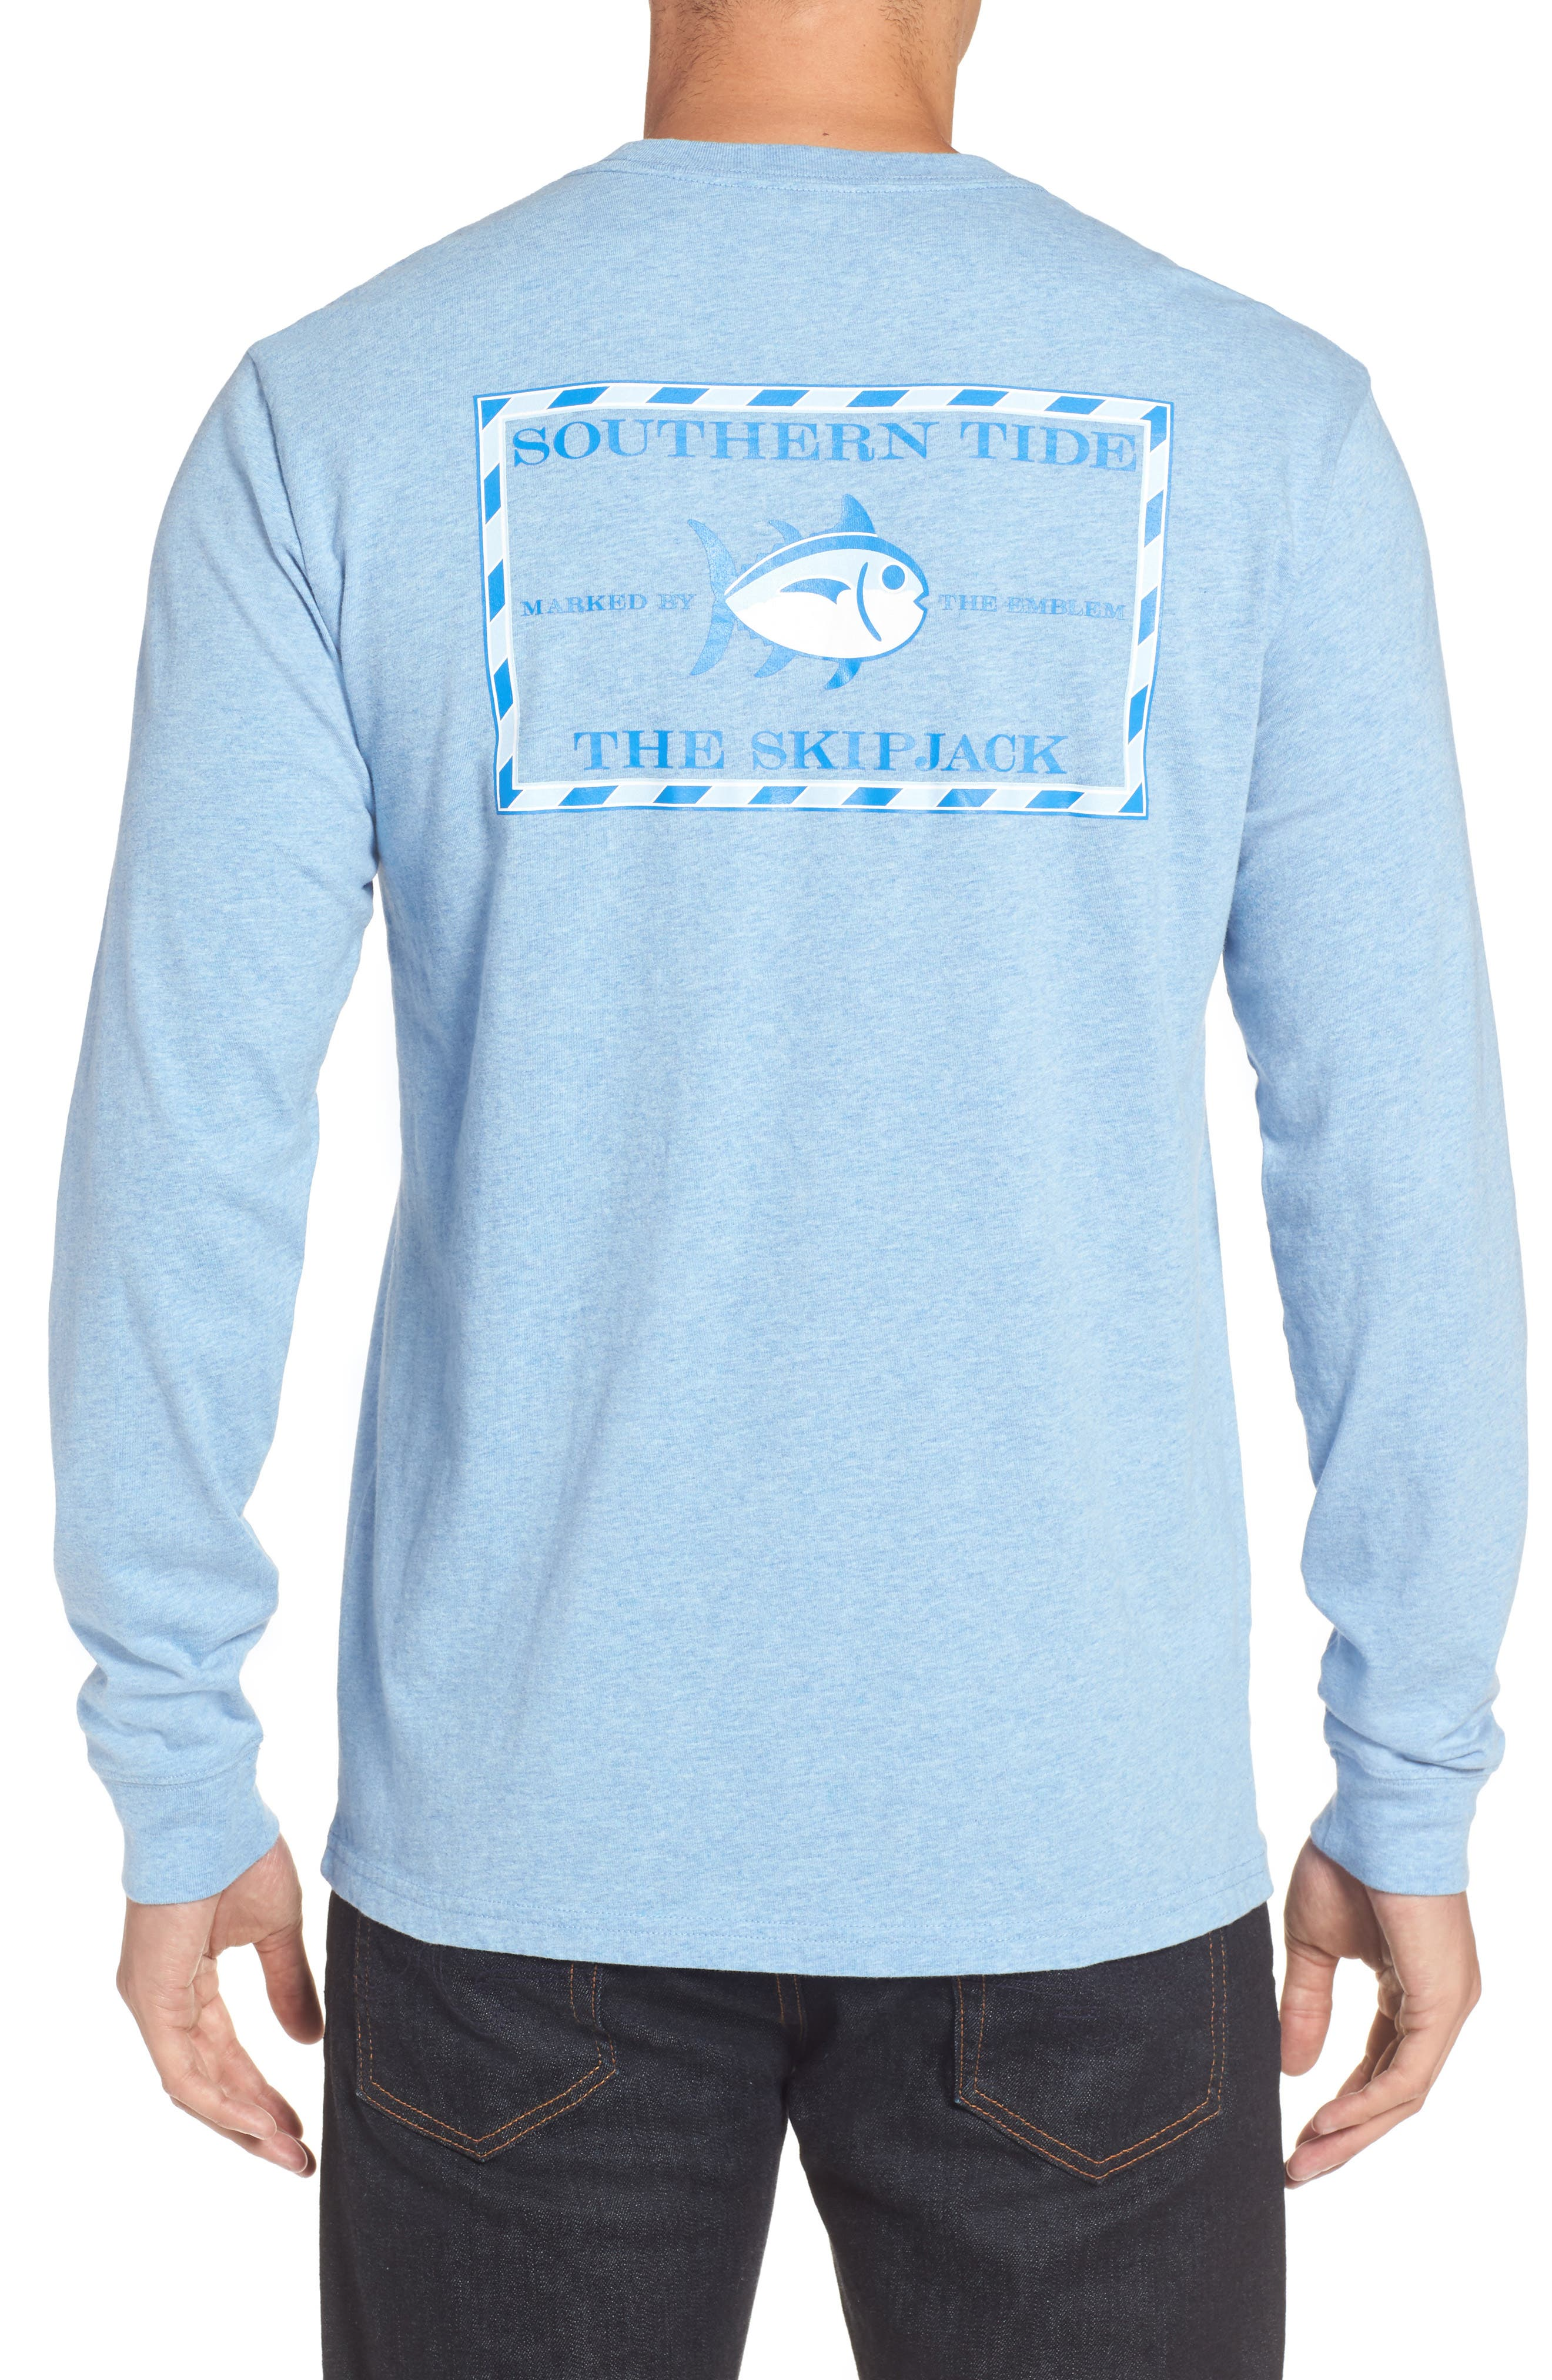 Original Skipjack T-Shirt,                         Main,                         color, Ocean Channel